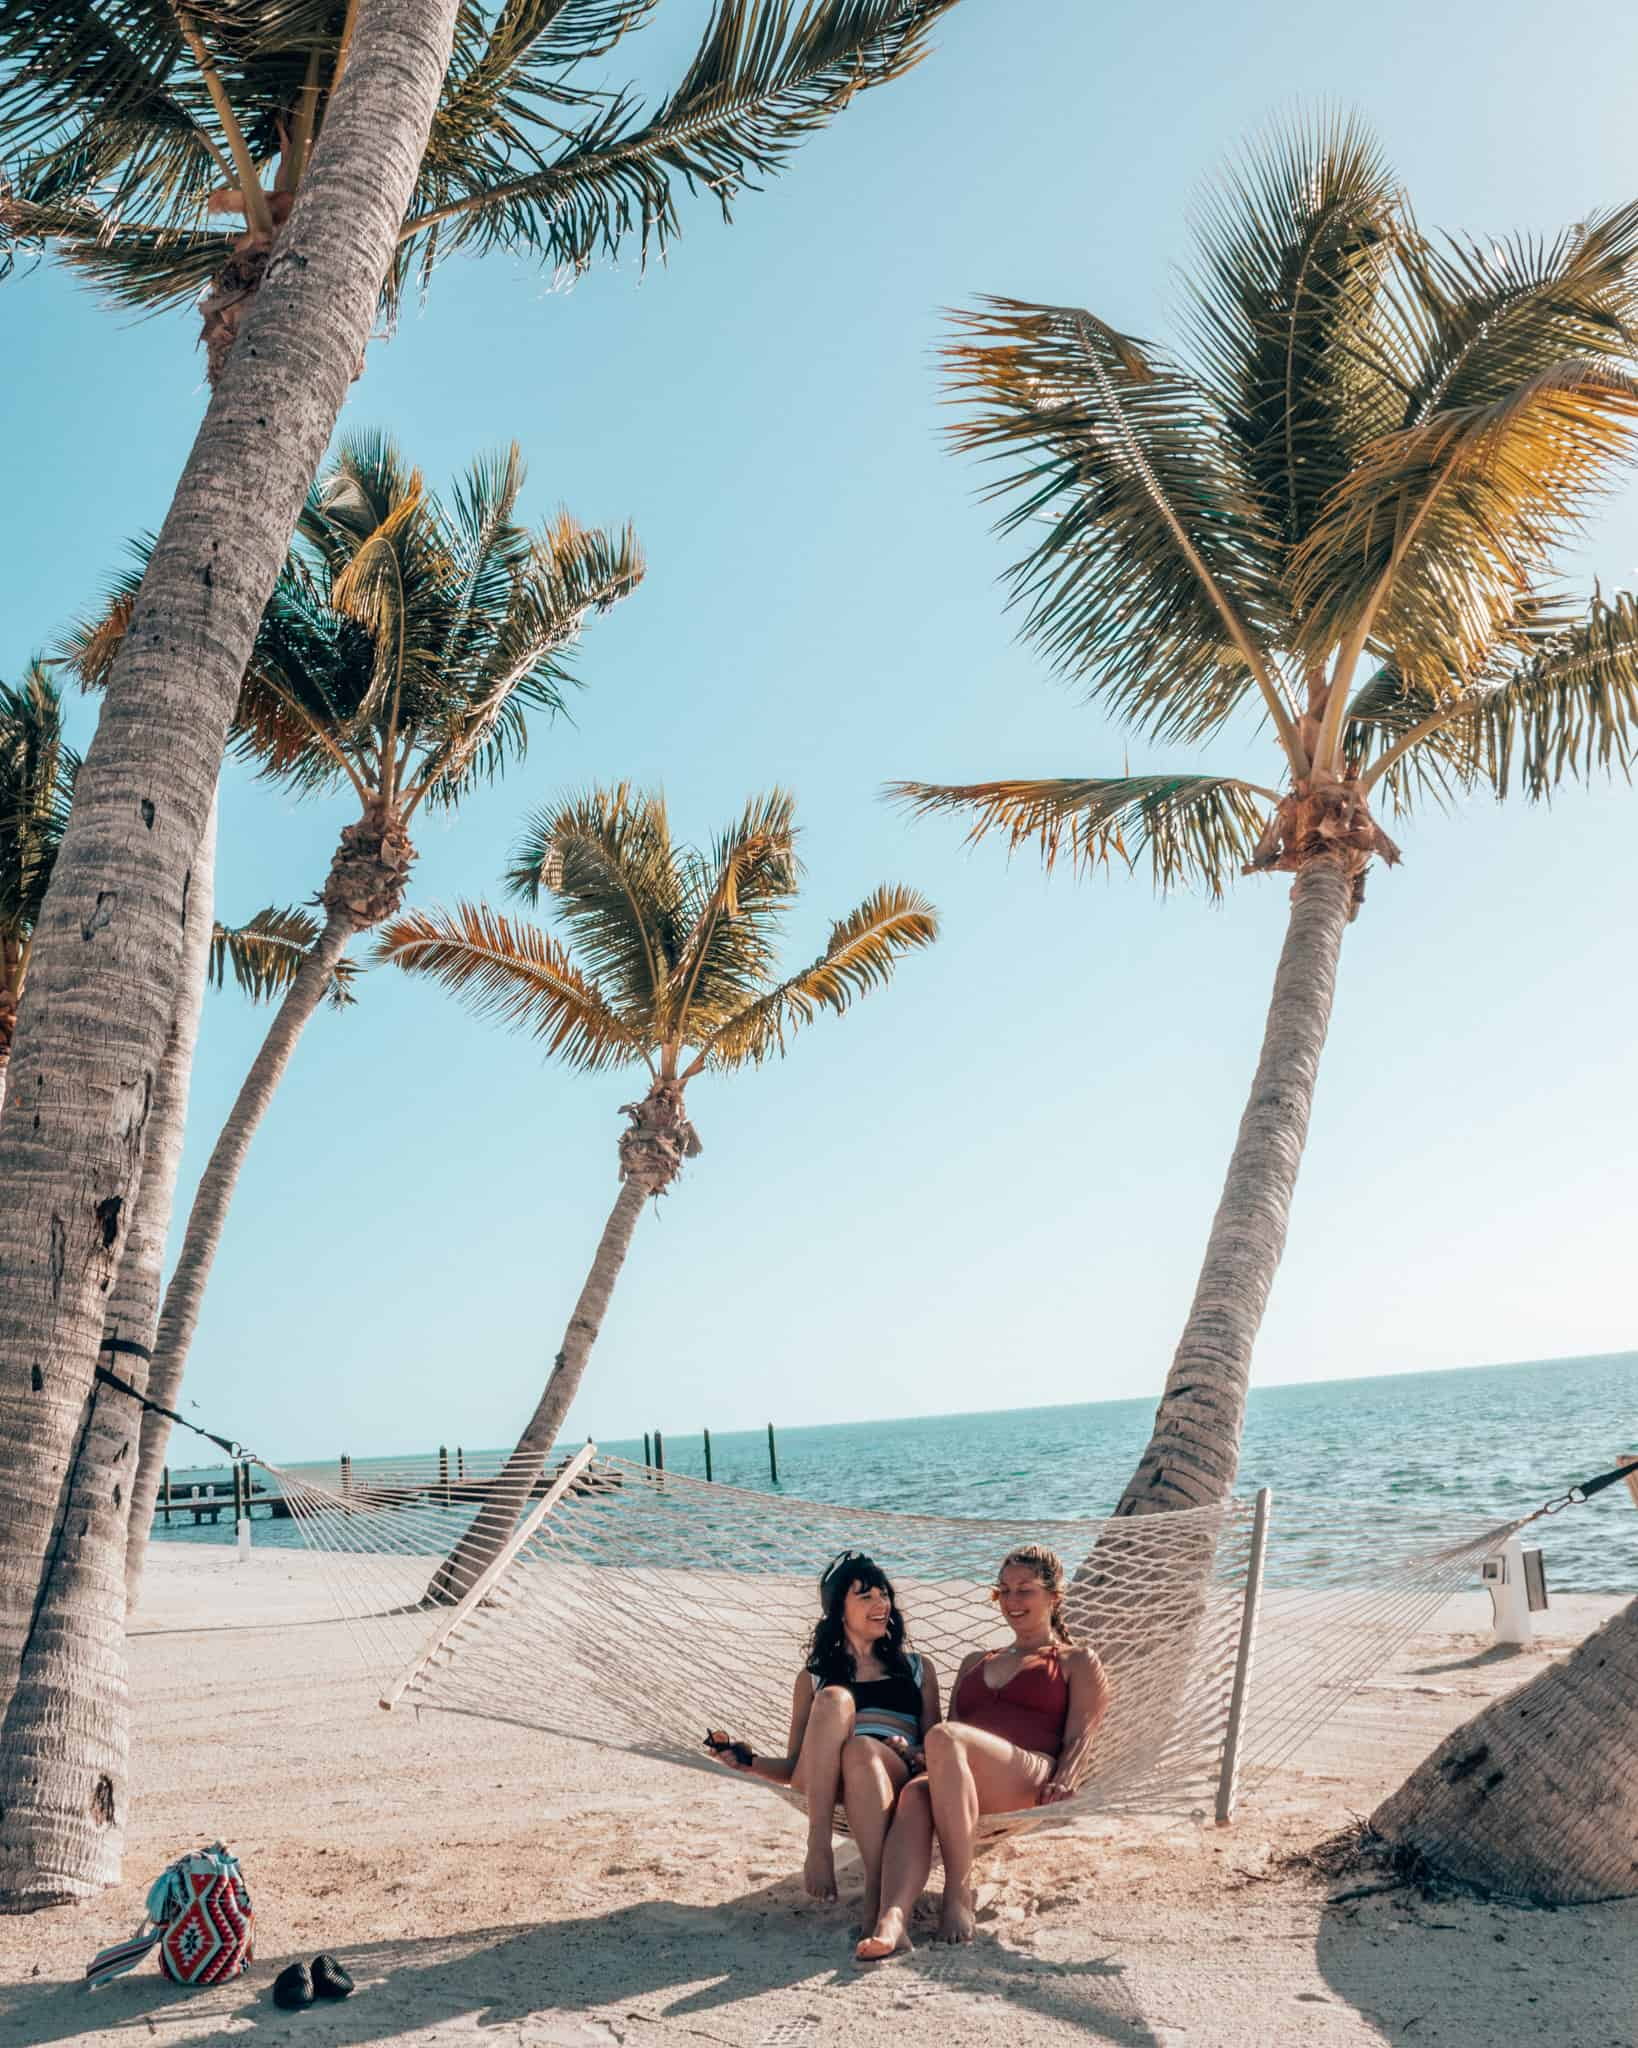 2 girls in a hammock hanging on palm trees